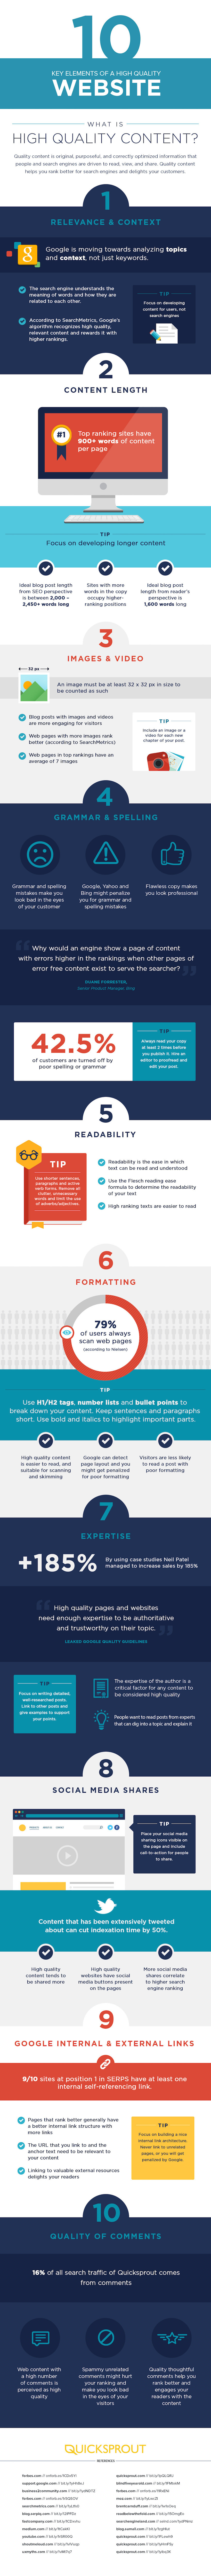 The 10 Key Elements of a High Quality Website